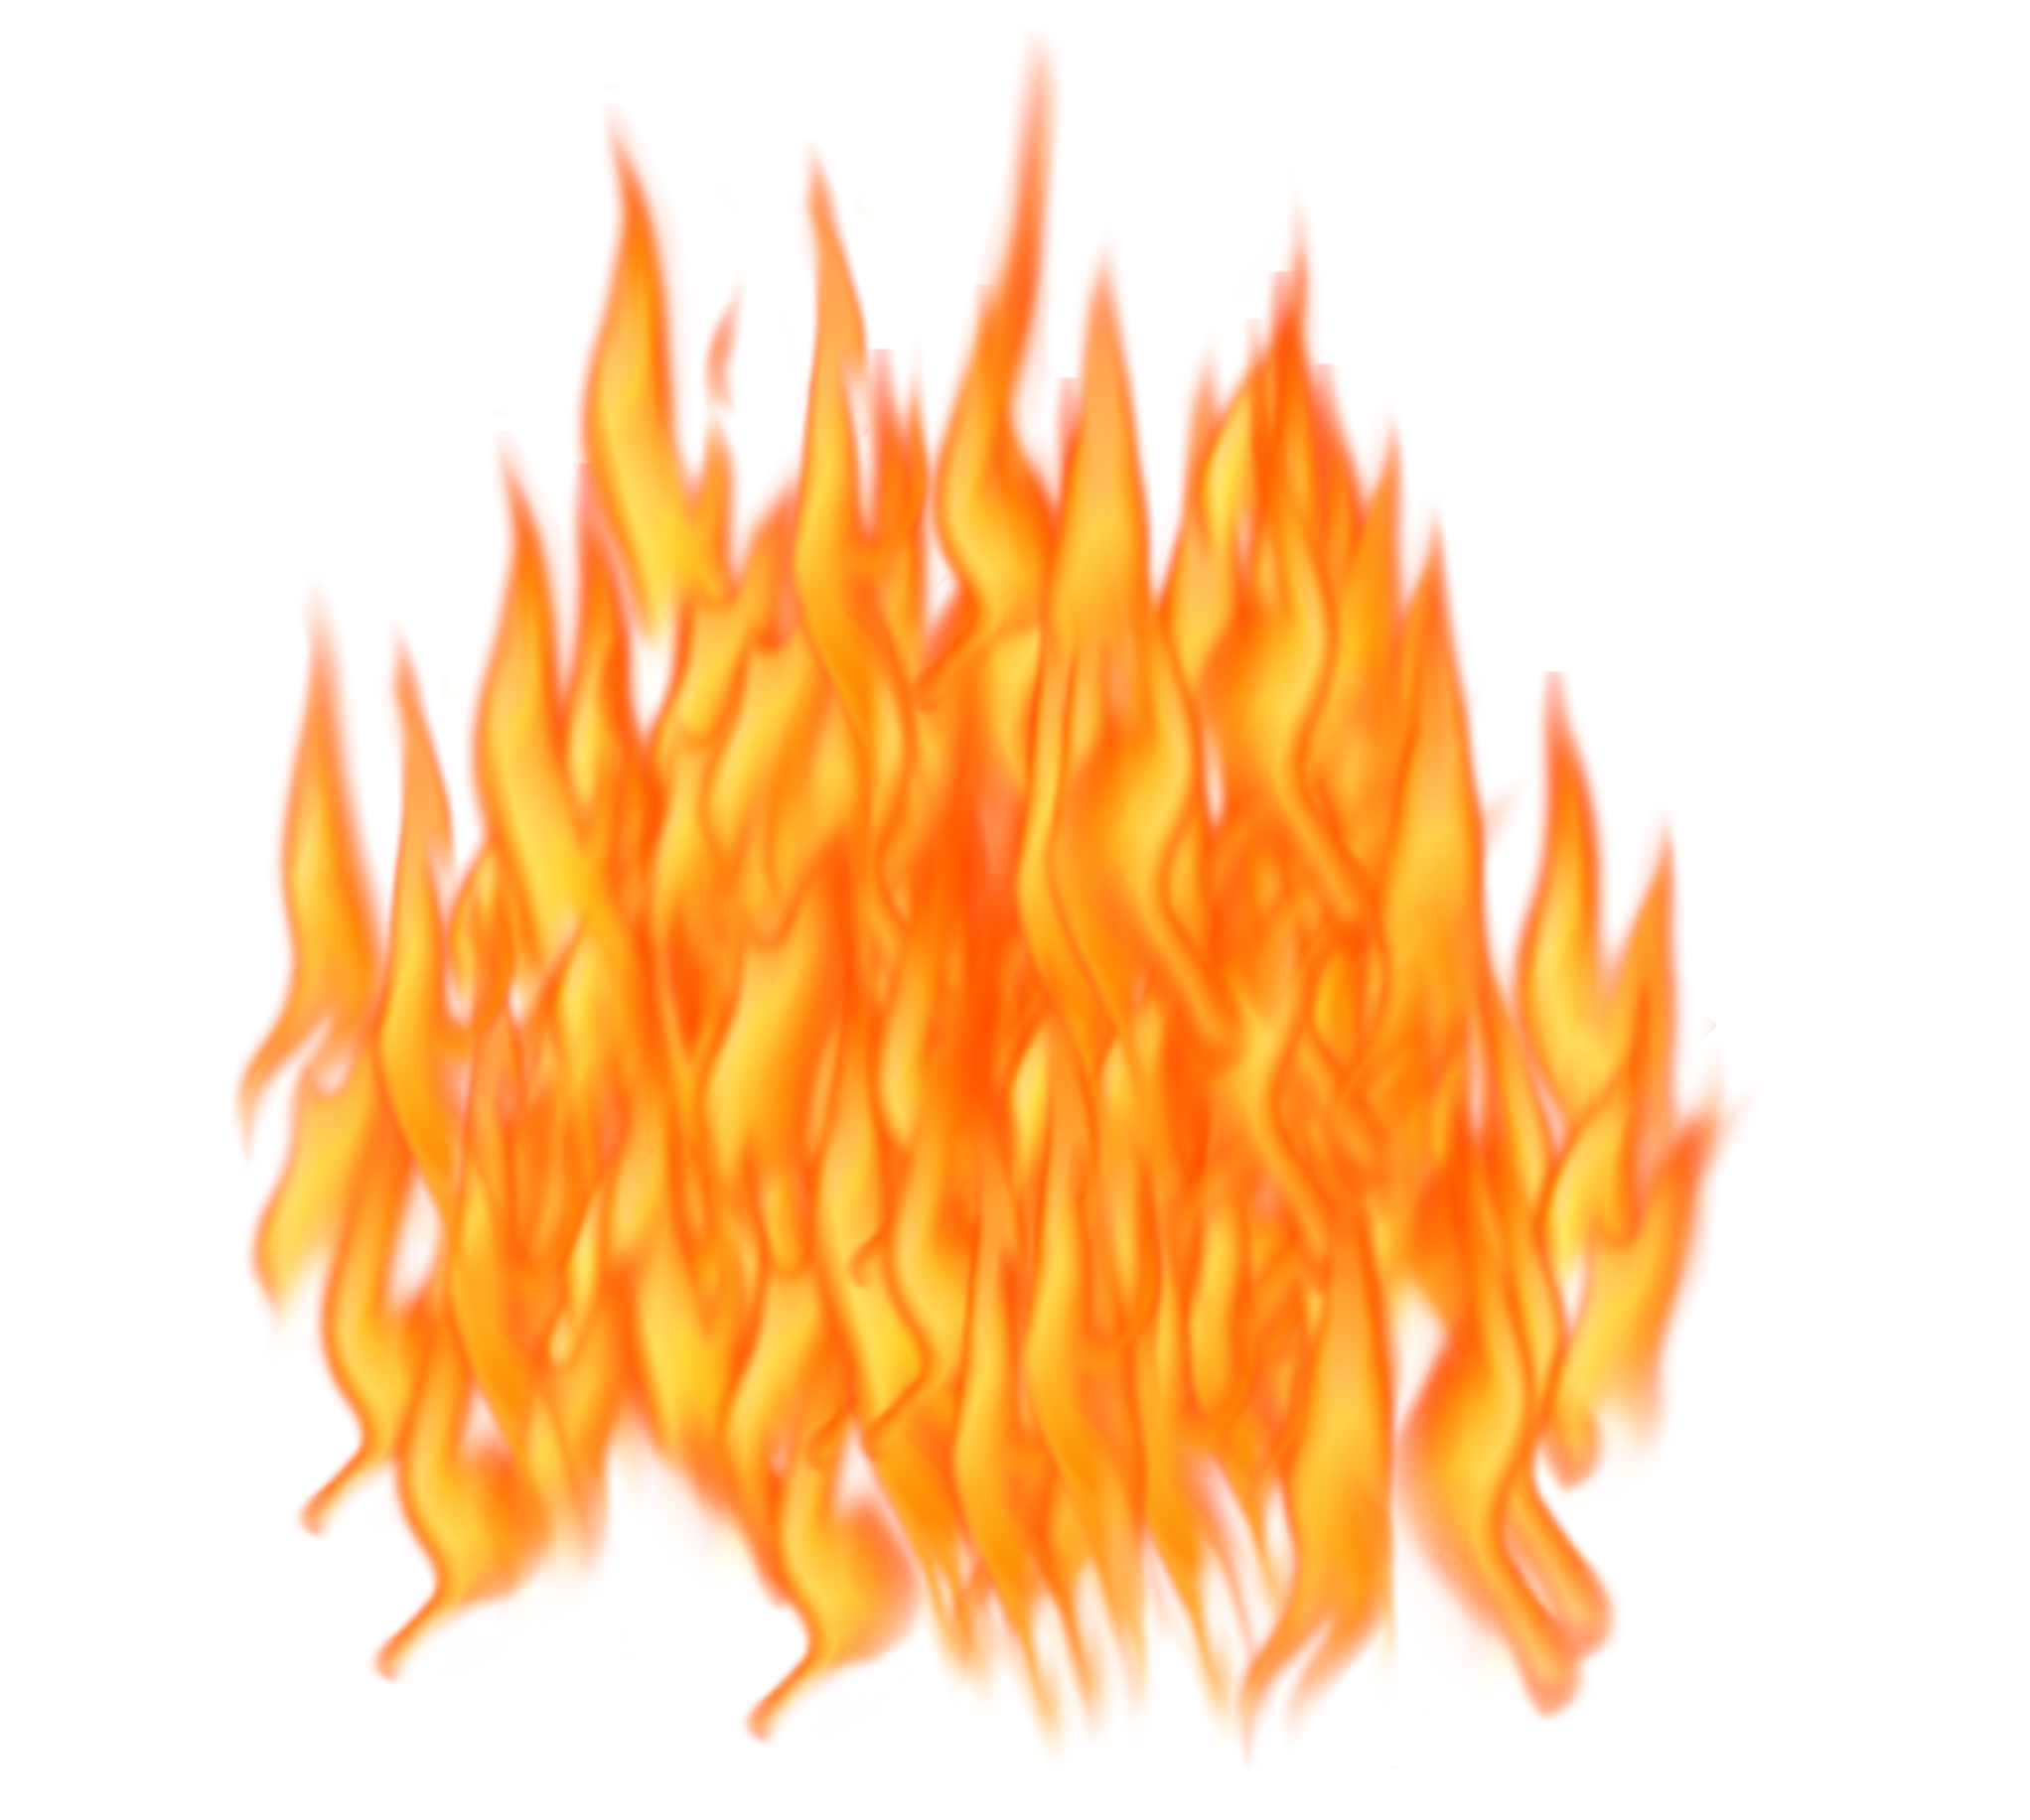 PNG File Name: Fire Flame Plu